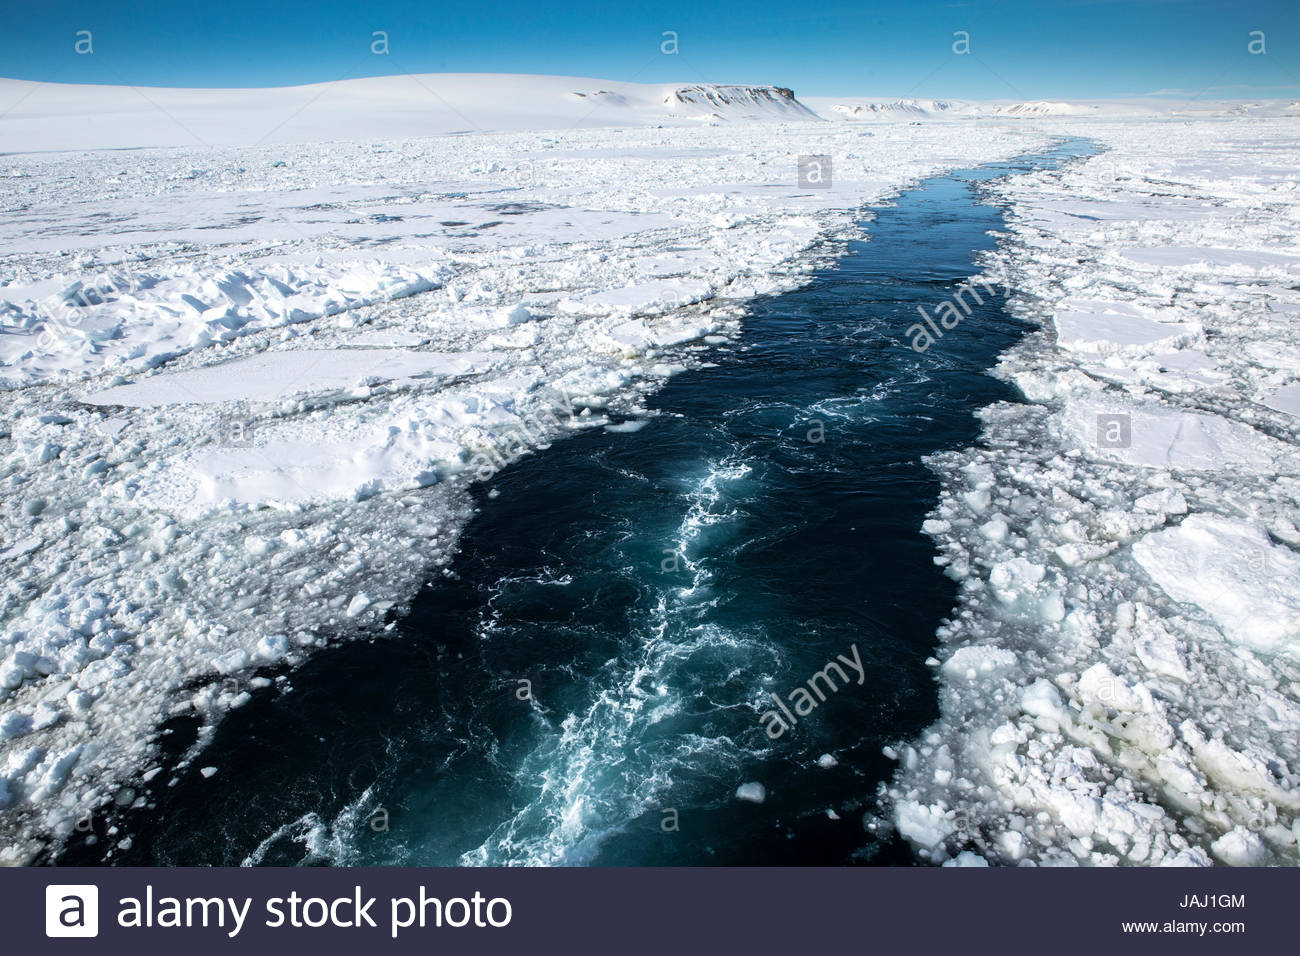 The wake of the expedition cruise ship National Geographic Explorer through the pack ice in Hinlopenstretet. - Stock Image